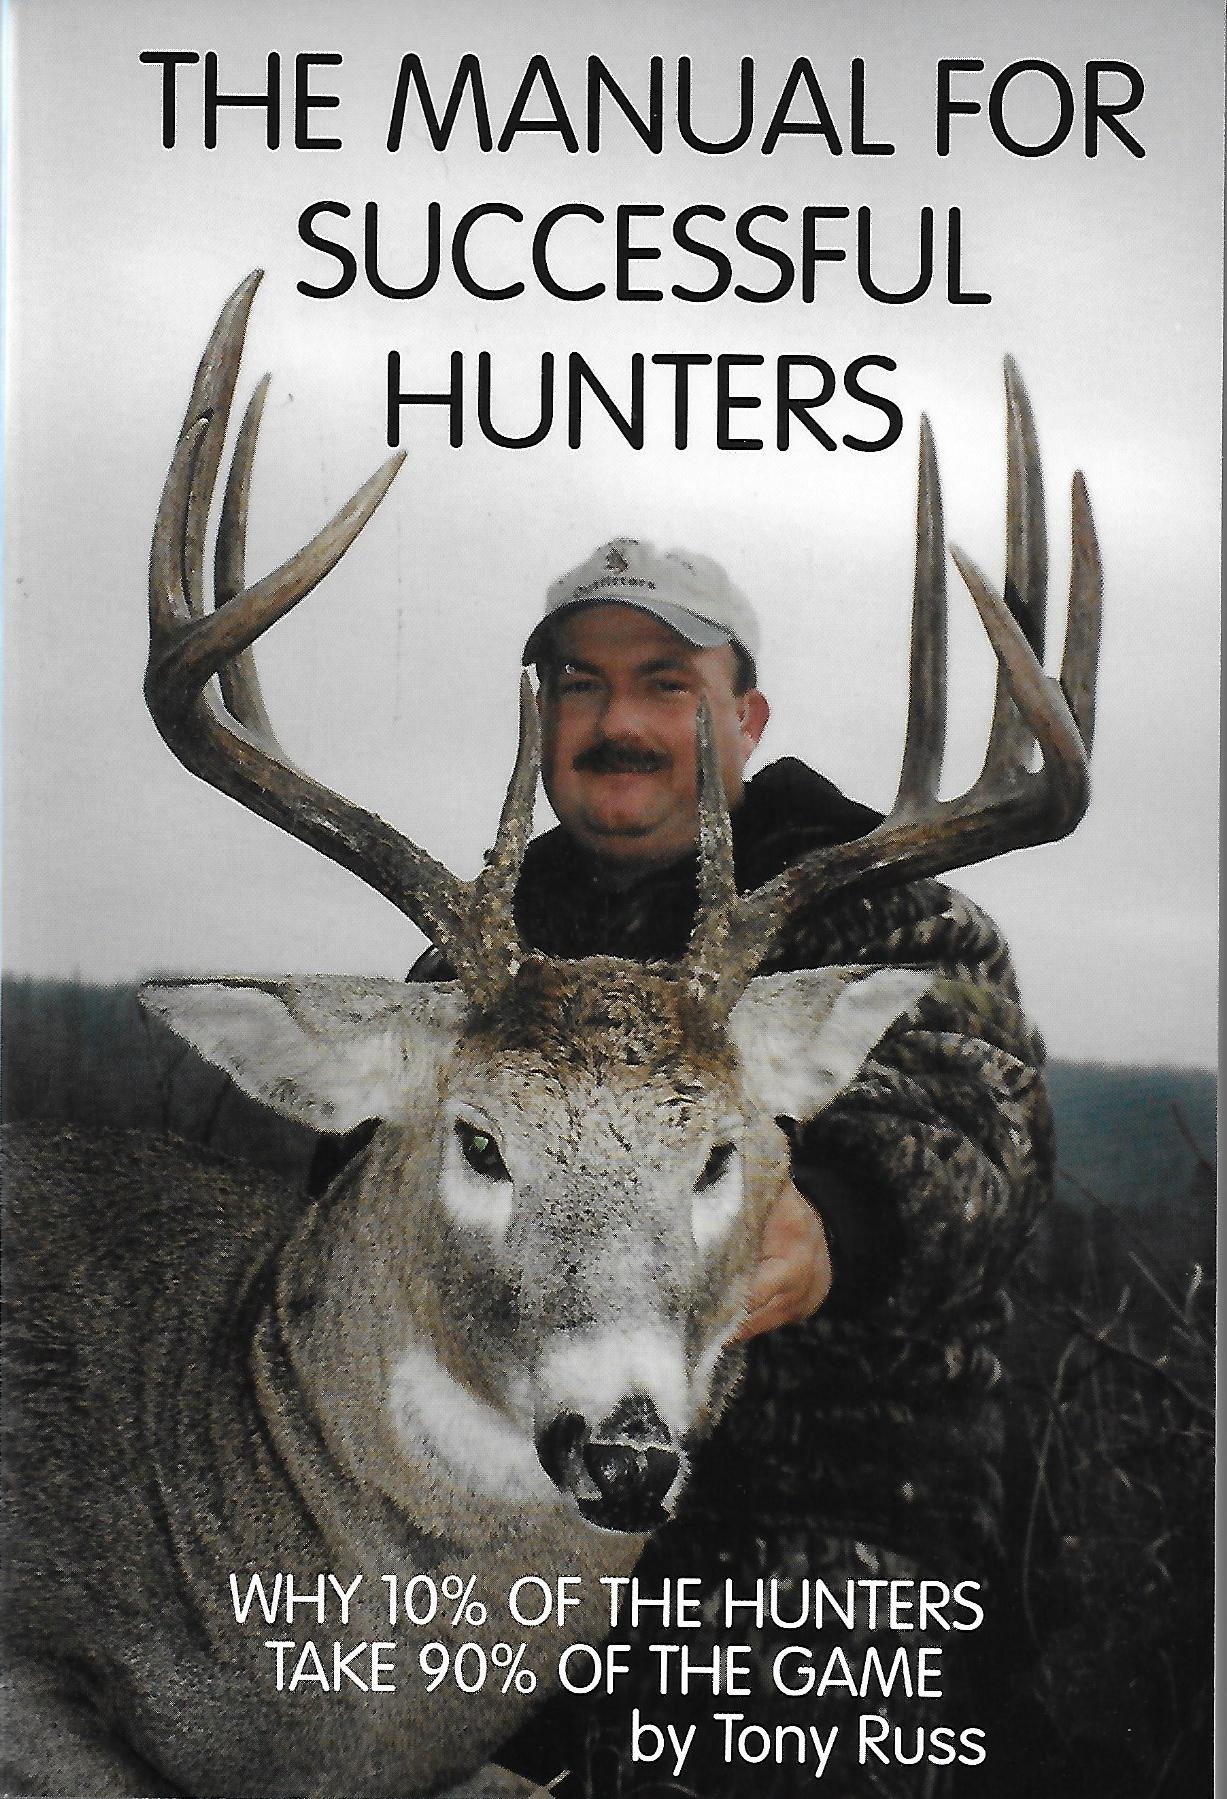 The Manual for Successful Hunters